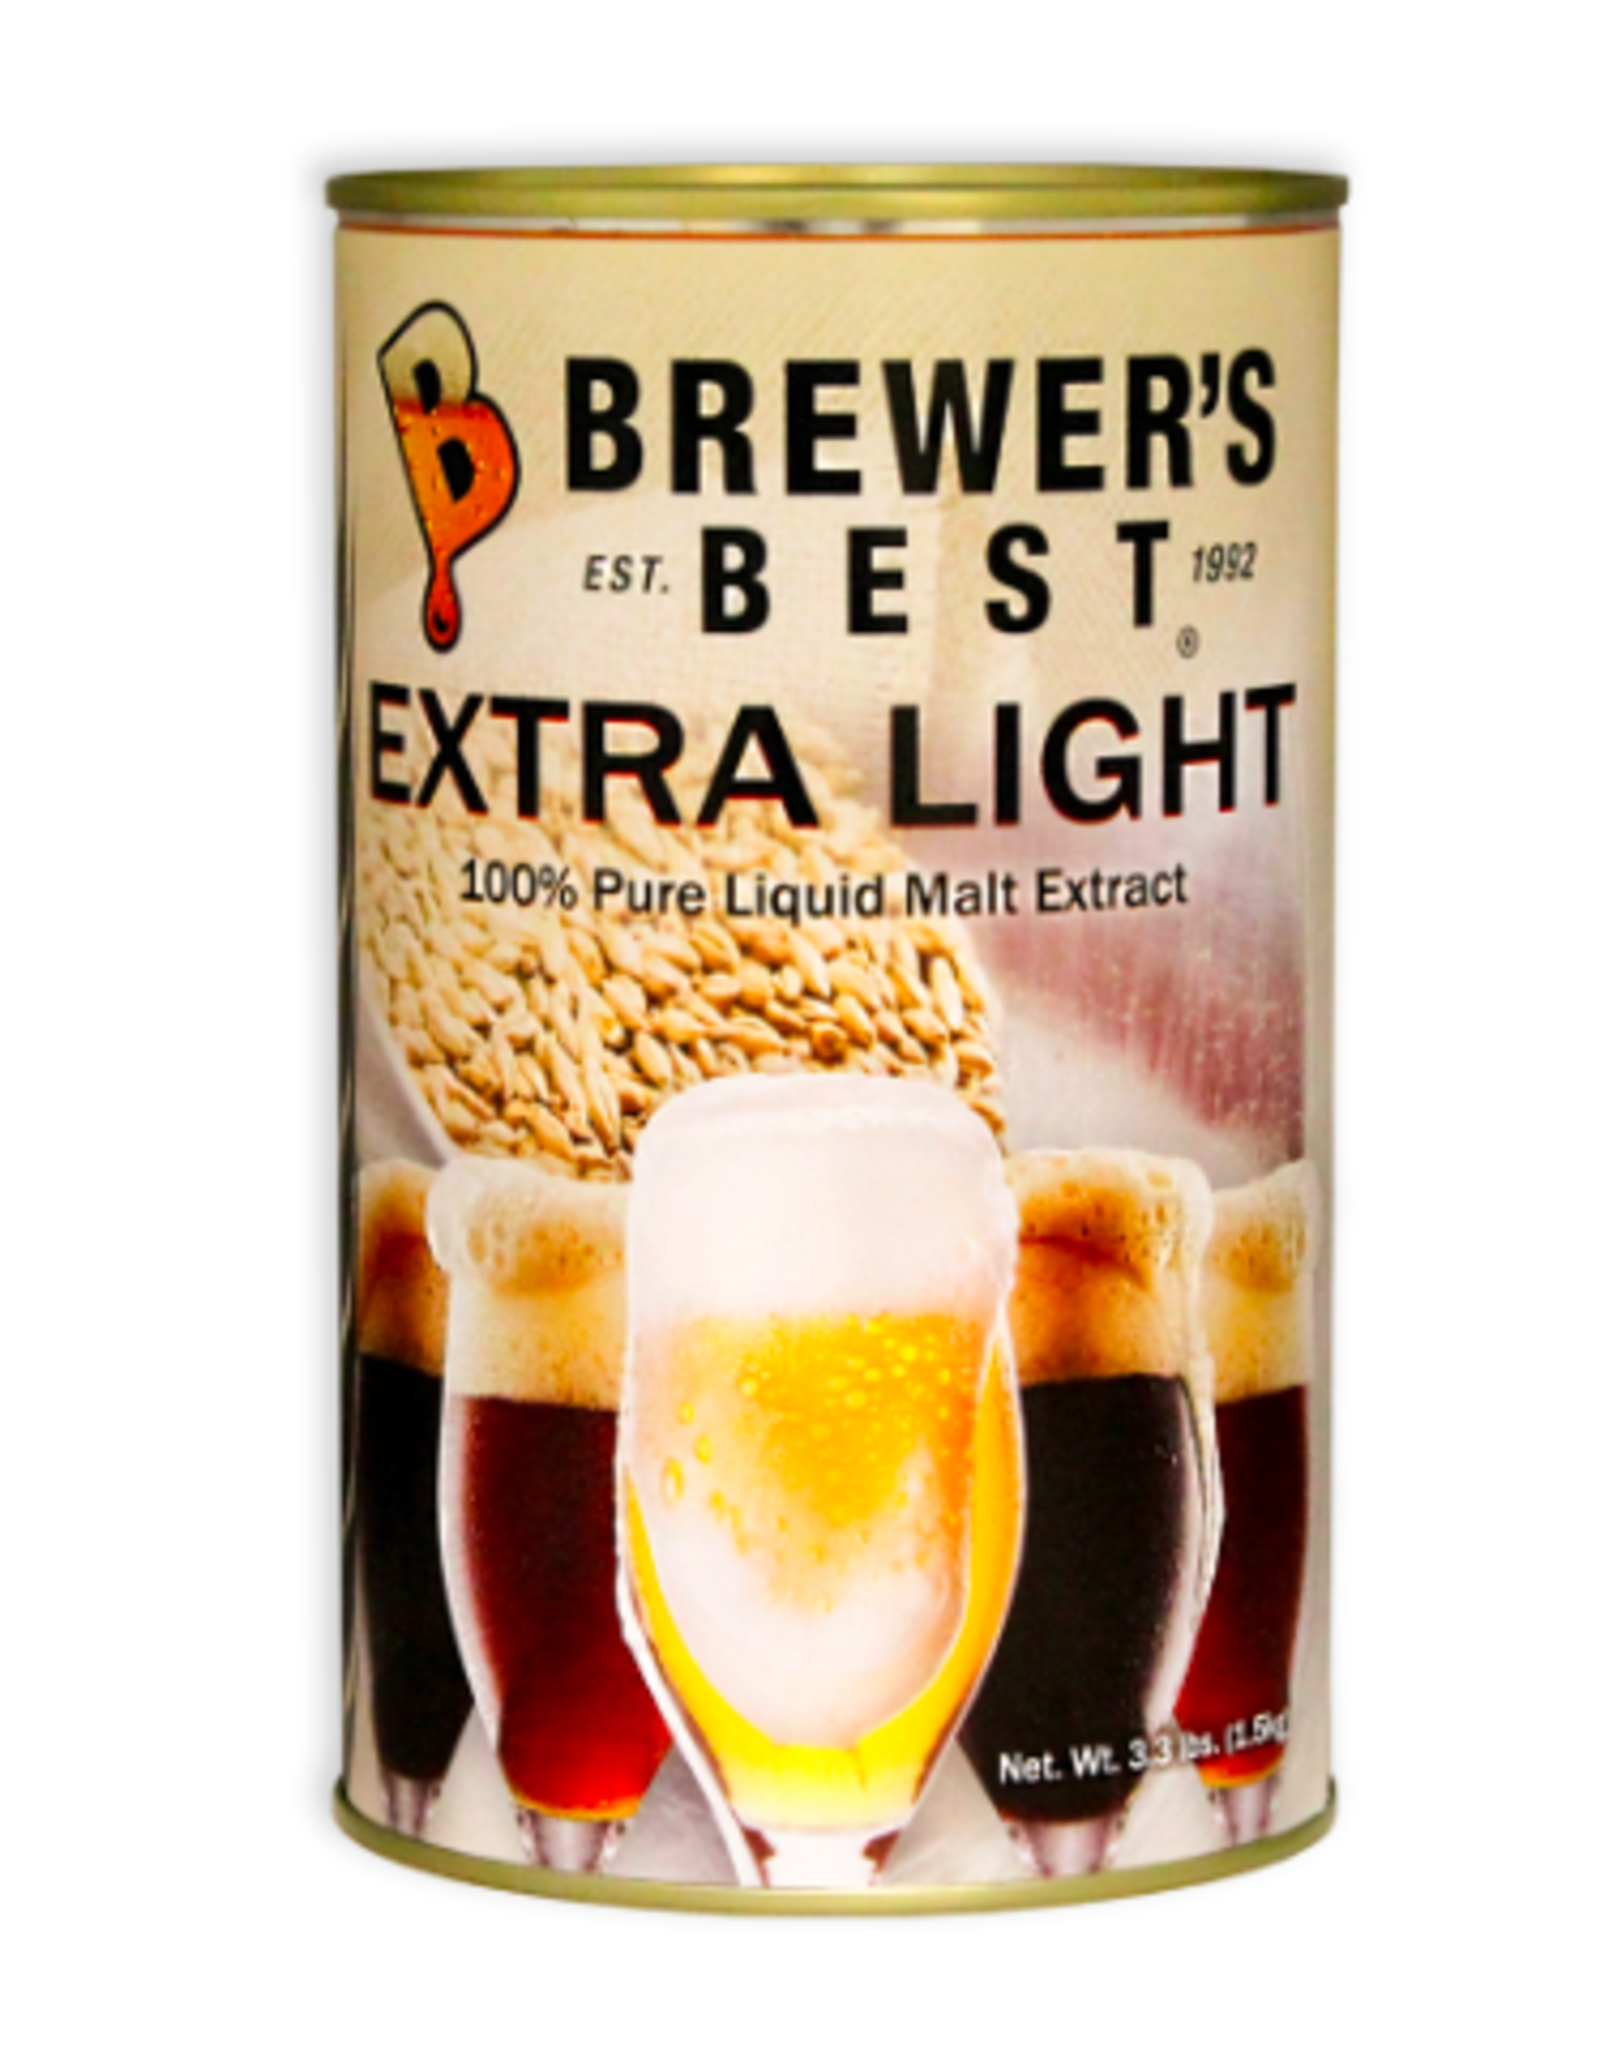 EXTRA LIGHT LIQUID MALT EXTRACT 3.3 LB